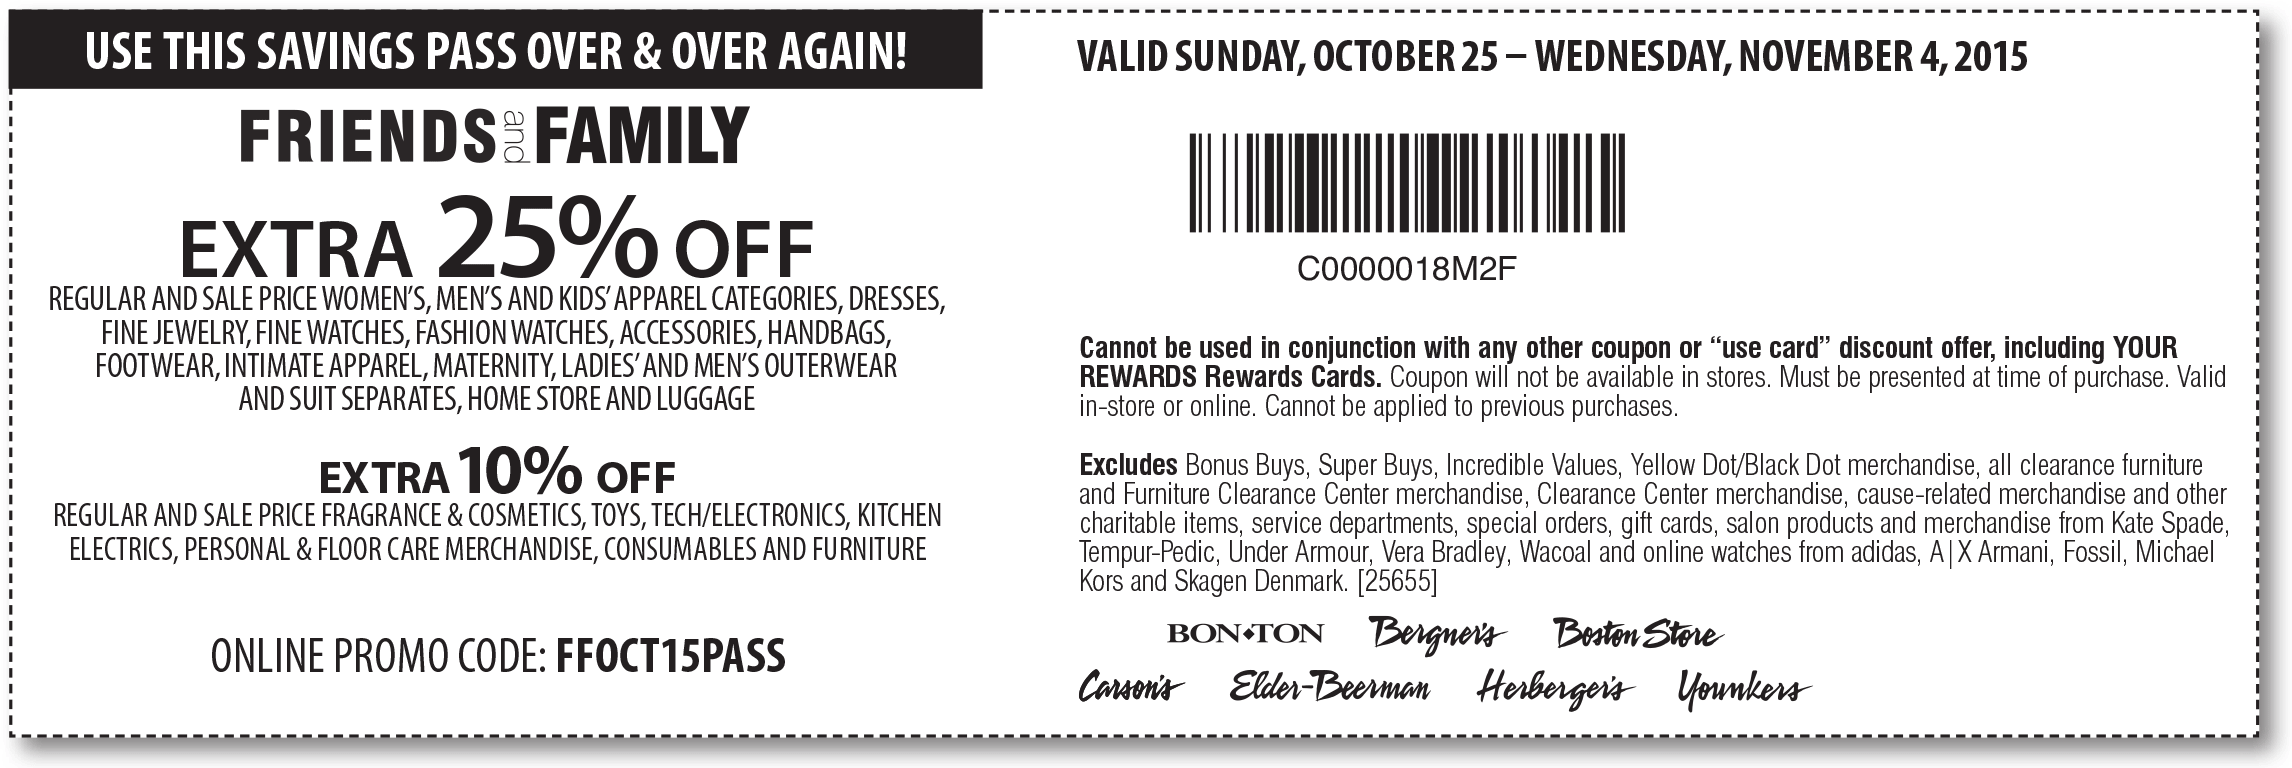 Bon Ton Coupon May 2018 Extra 25% off at Carsons, Bon Ton & sister stores, or online via promo code FFOCT15PASS